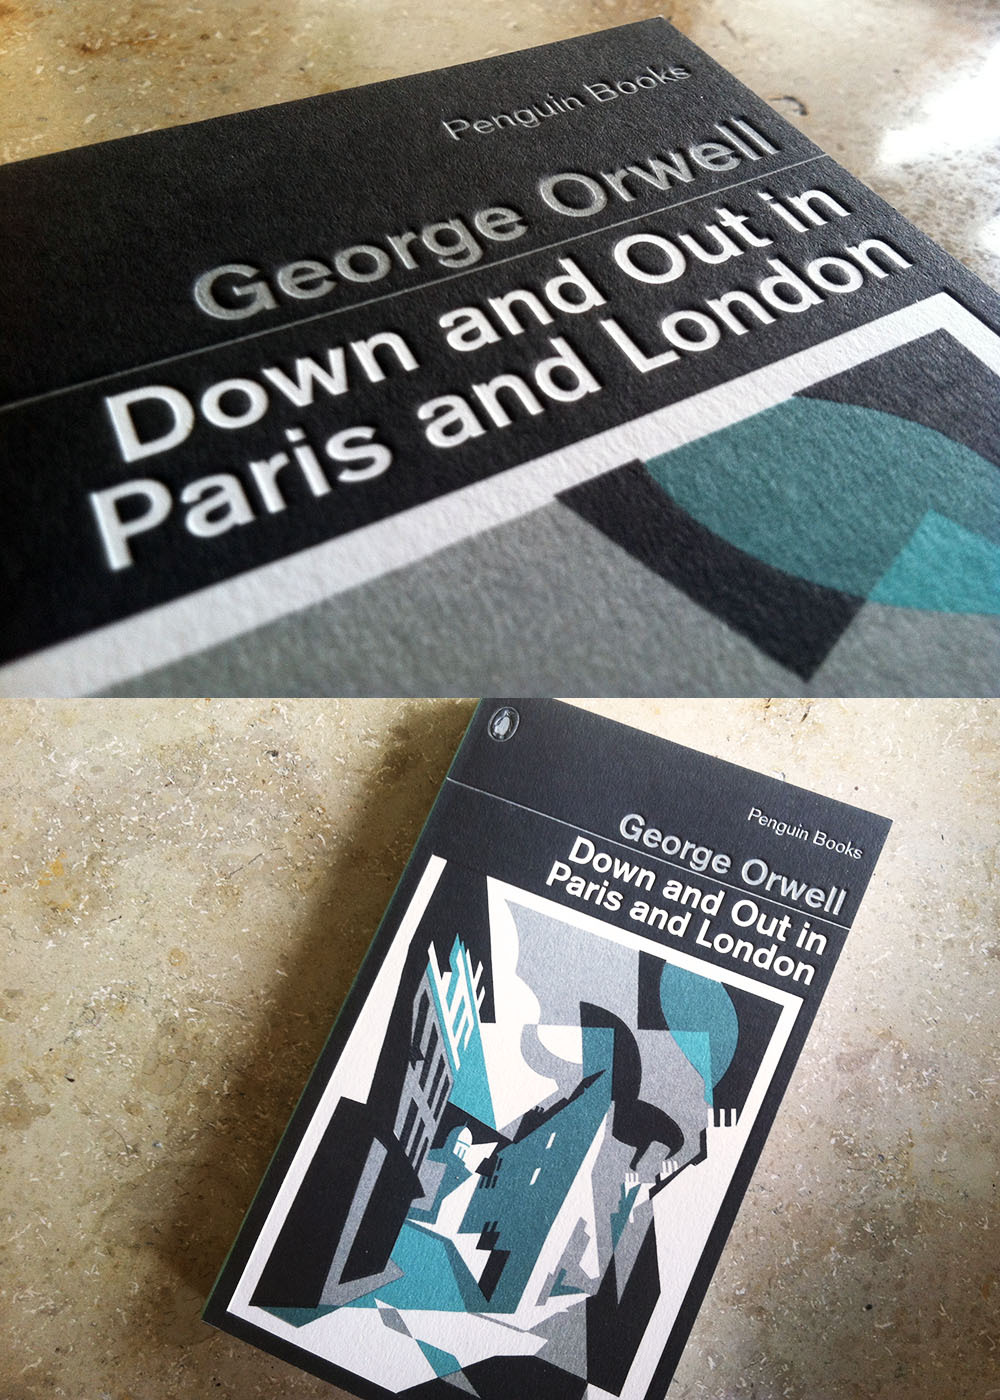 I just received a lovely edition of George Orwell's Down and Out in Paris and London in the mail. It's part of a series of Orwell classics that Penguin rereleased with beautiful covers designed by David Pearson. 1984 certainly wins the creativity price with a plain cover and blacked-out title. That said, I really love the detail of Down and Out.   Not long ago, I refused to buy Penguin books. The quality was just complete crap. Which is ironic, considering the company's history. Sir Allen Lane started Penguin precisely because he disliked the poor quality of paperbacks found at his local train station. So, he began publishing well-designed books of literature for the masses. As the company grew into a global publishing powerhouse, profitability became the sole objective and graphic design was considered an unnecessary expense. As soon as head designer Germano Facetti left the company in 1971, quality just went to hell. I'm not entirely sure what happened, but it looks like they are finally returning back to their roots. Over the past few months, Penguin came out with a whole bunch of amazingly designed books. I mean, Down and Out has a letterpress cover!   Now, there's an important point to this story. Publishers are constantly freaking out because they still don't know how to deal with digital. Will print die? I don't think so. People will always love the tactile experience of reading a book. But here's the thing: Digital will be a commodity while print will be a luxury. Just look at vinyl. LP sales have increased by 17.7% last year and most of the buyers are millennials.  You consume everyday music streaming, but when you really really like a record, you will buy the vinyl. Same holds true for books. Once you saw the cover for Murakami's 1Q84, you just had to hold it in your hands. You just had to own it. People just had to see you with that book! Publishers can survive the future, but they won't do so by competing with digital. Instead, they must focus on stuff that digital cannot offer. In the end, hiring an amazing graphic designer might just be the key to profitability.